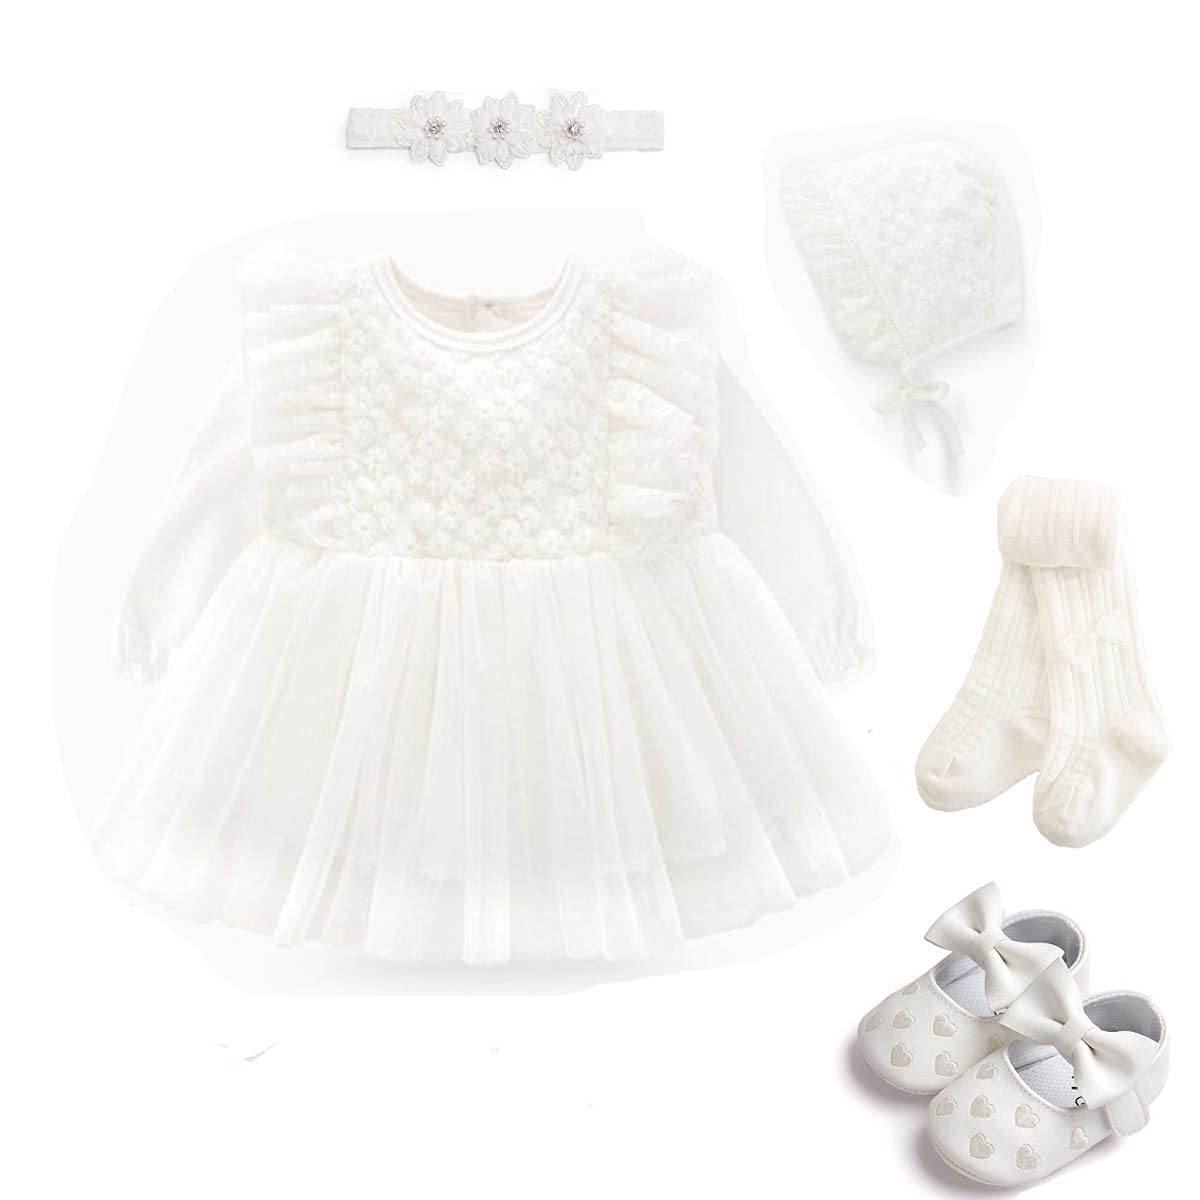 Dress Dress for baby Guipure Tights Body Headband Pink Set 0-3  3-6 months 5 in 1 Booties White Ivory